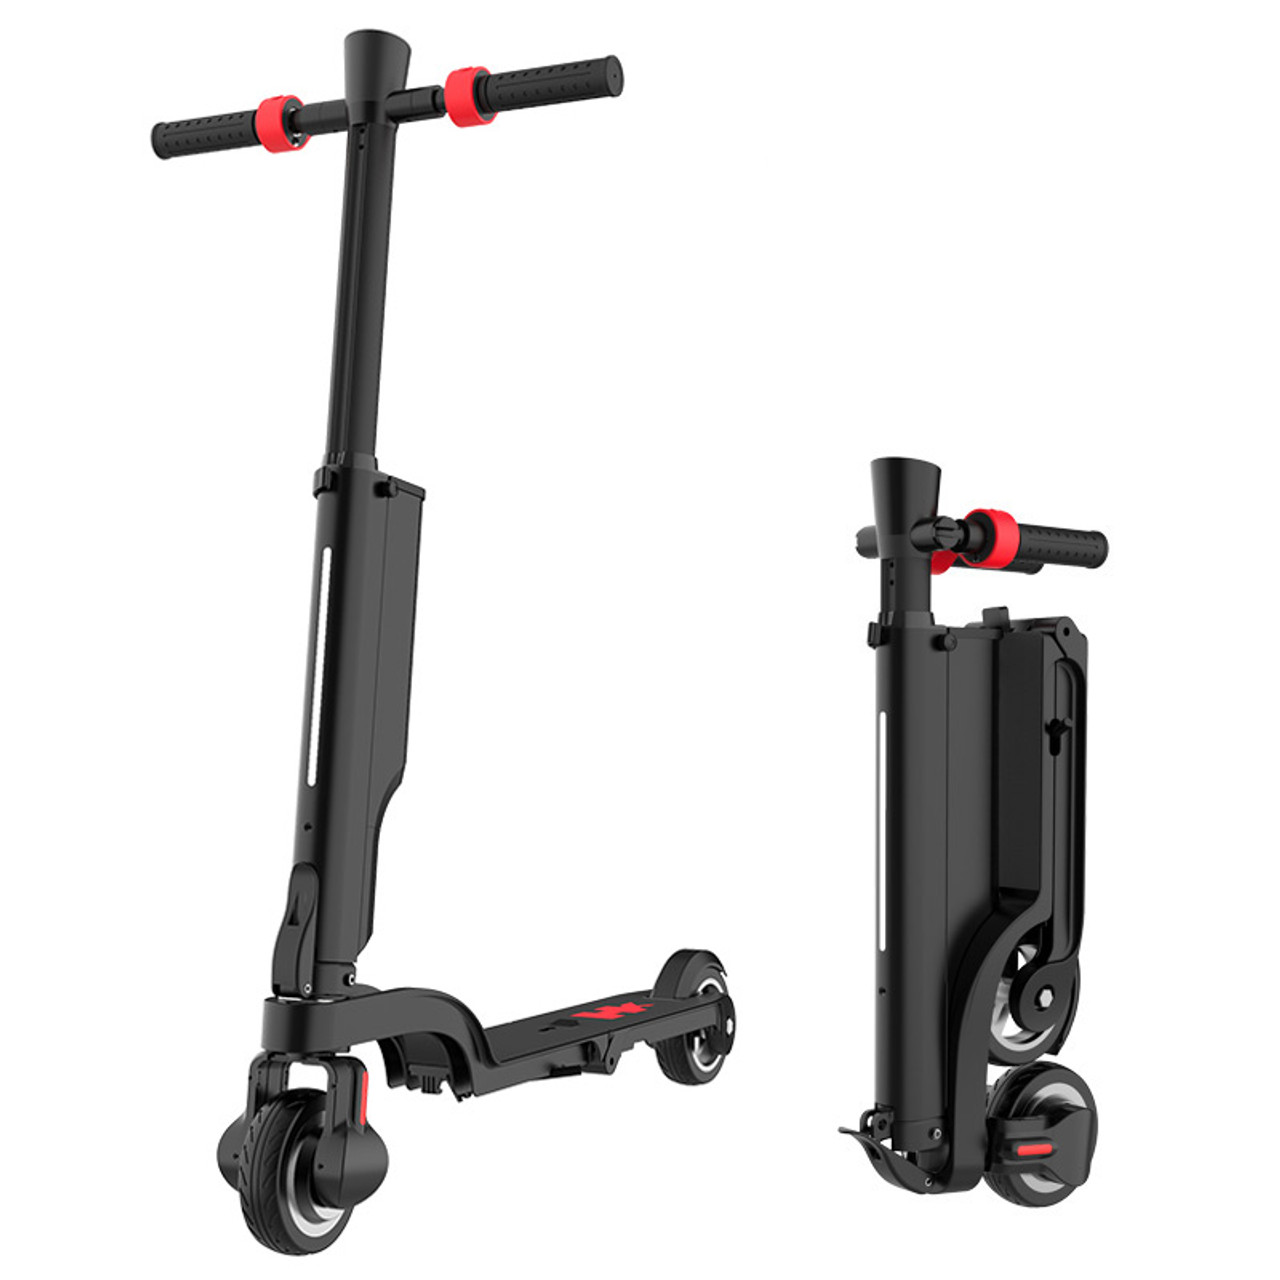 42184aa45d27 X6 Foldable Backpack Electric Scooter - 1.0